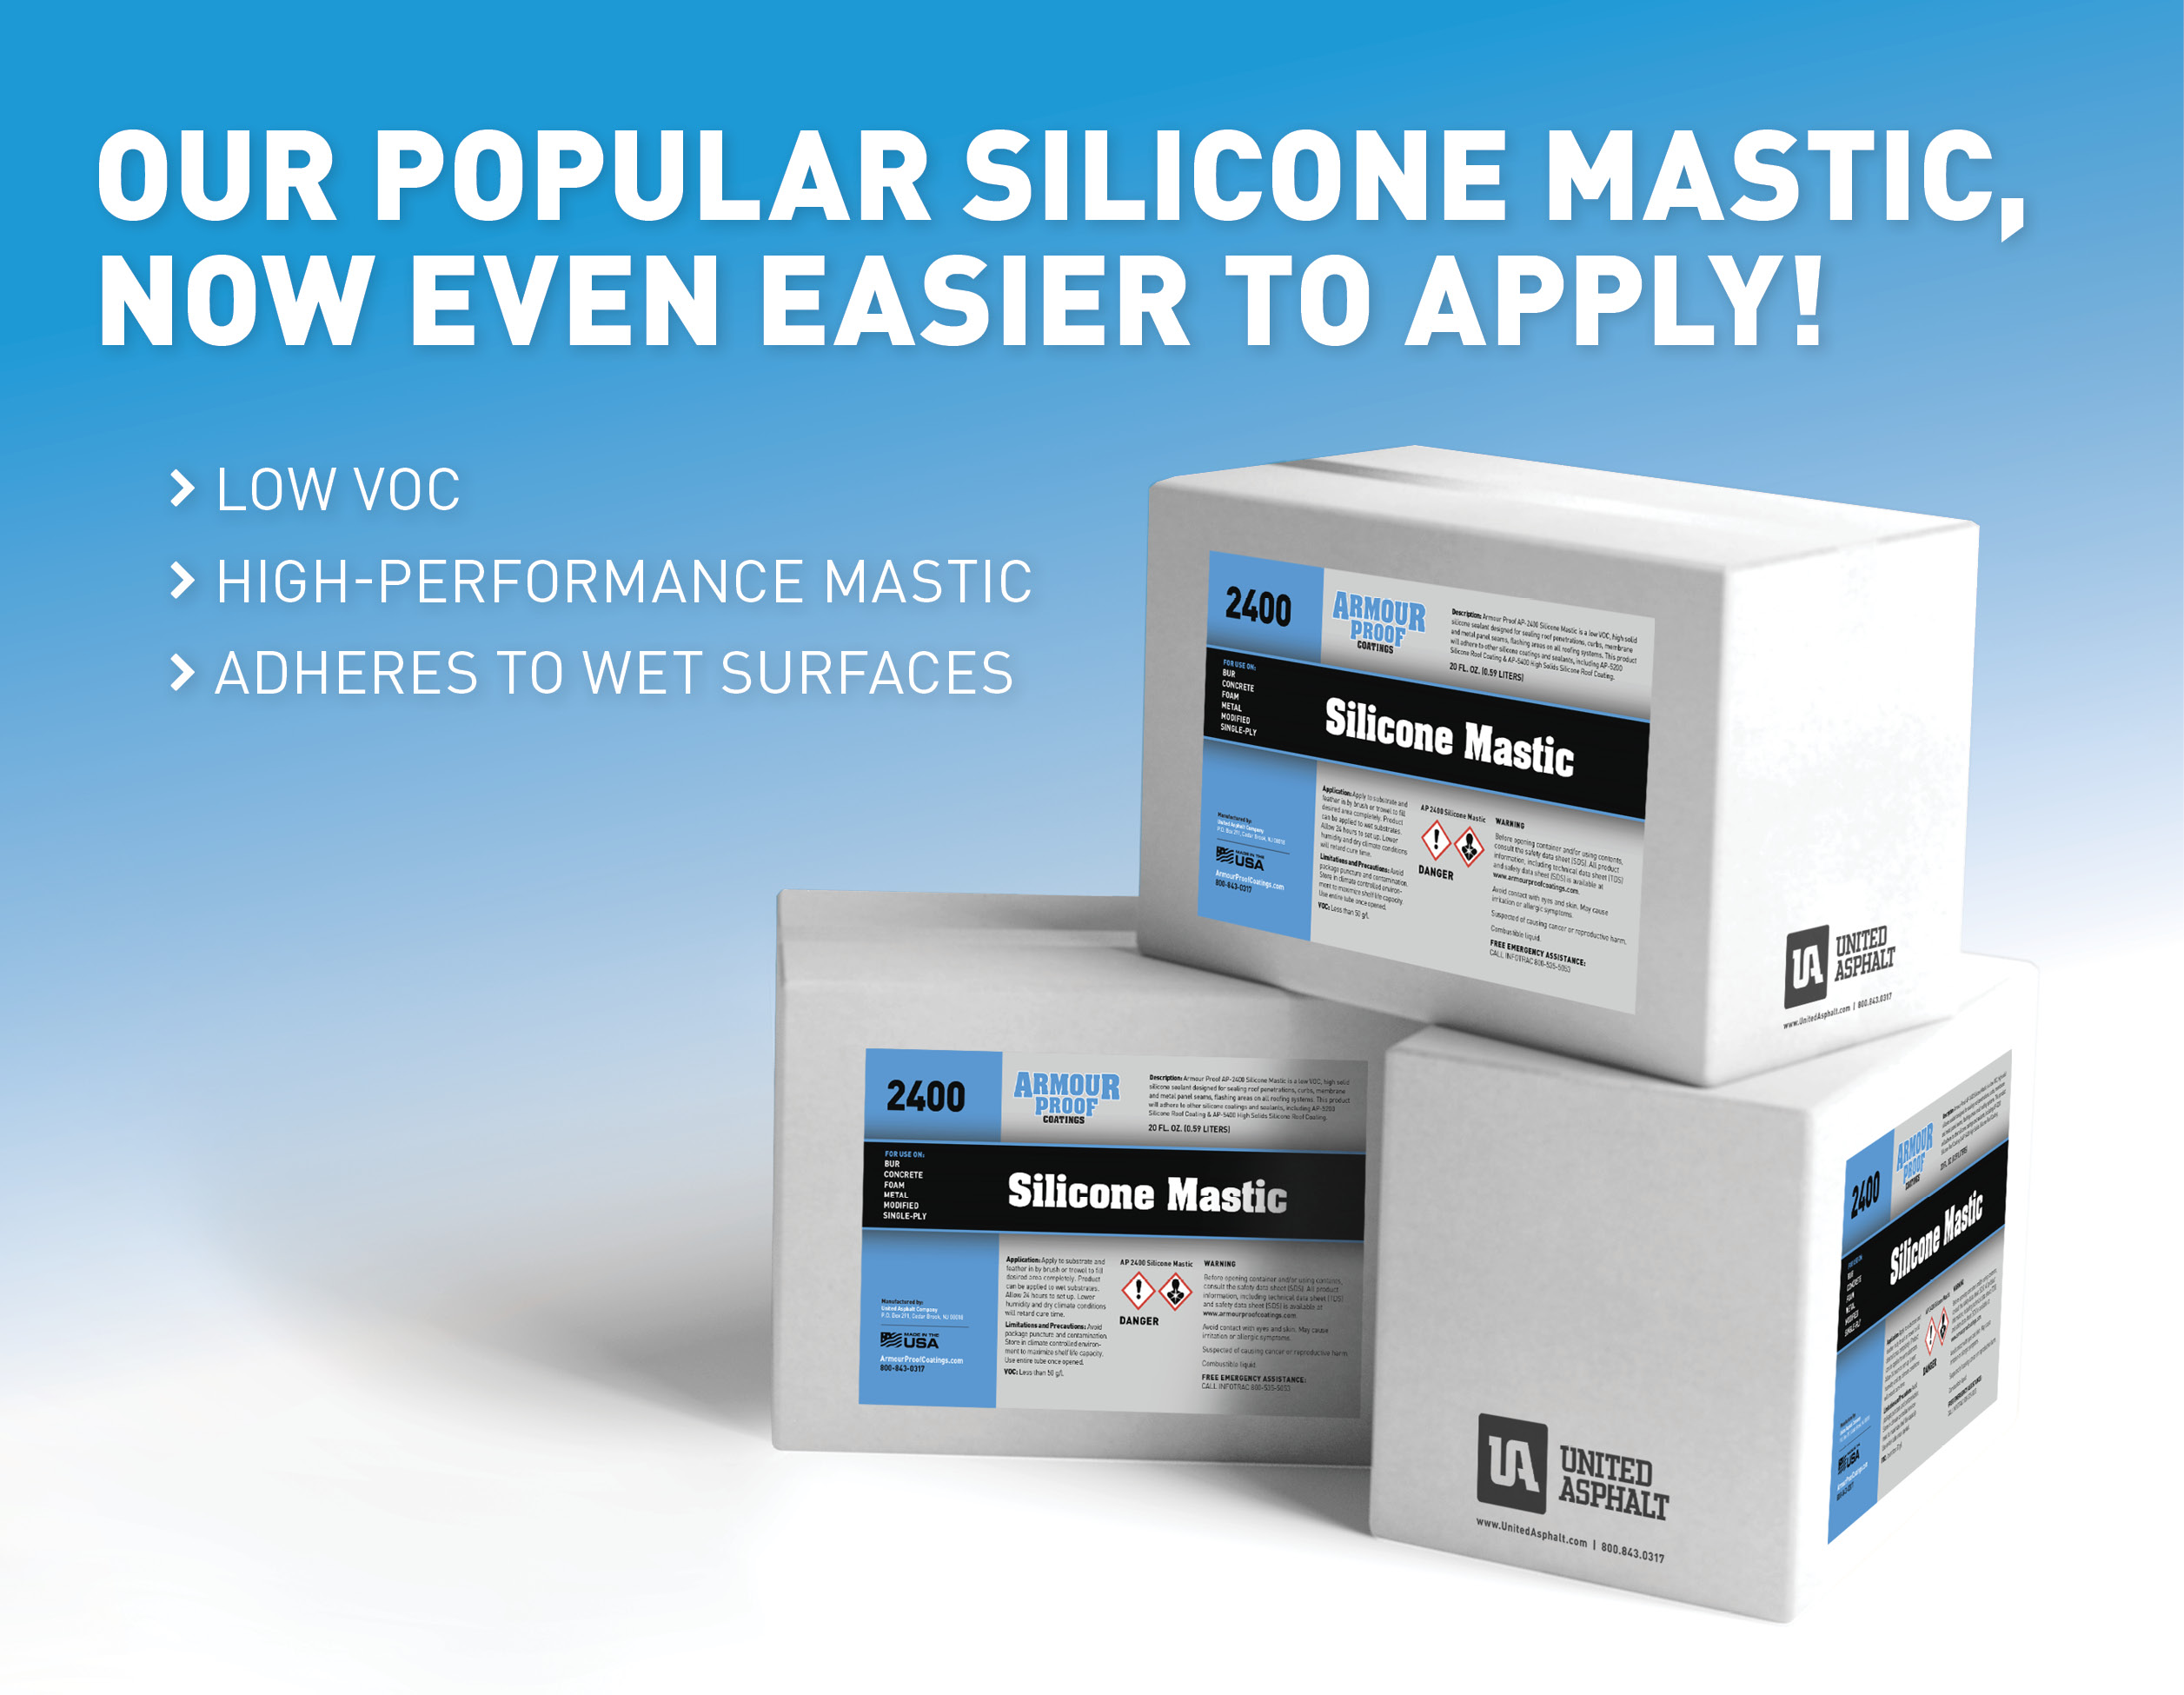 Silicone Mastic Lead Now Easier to Apply!